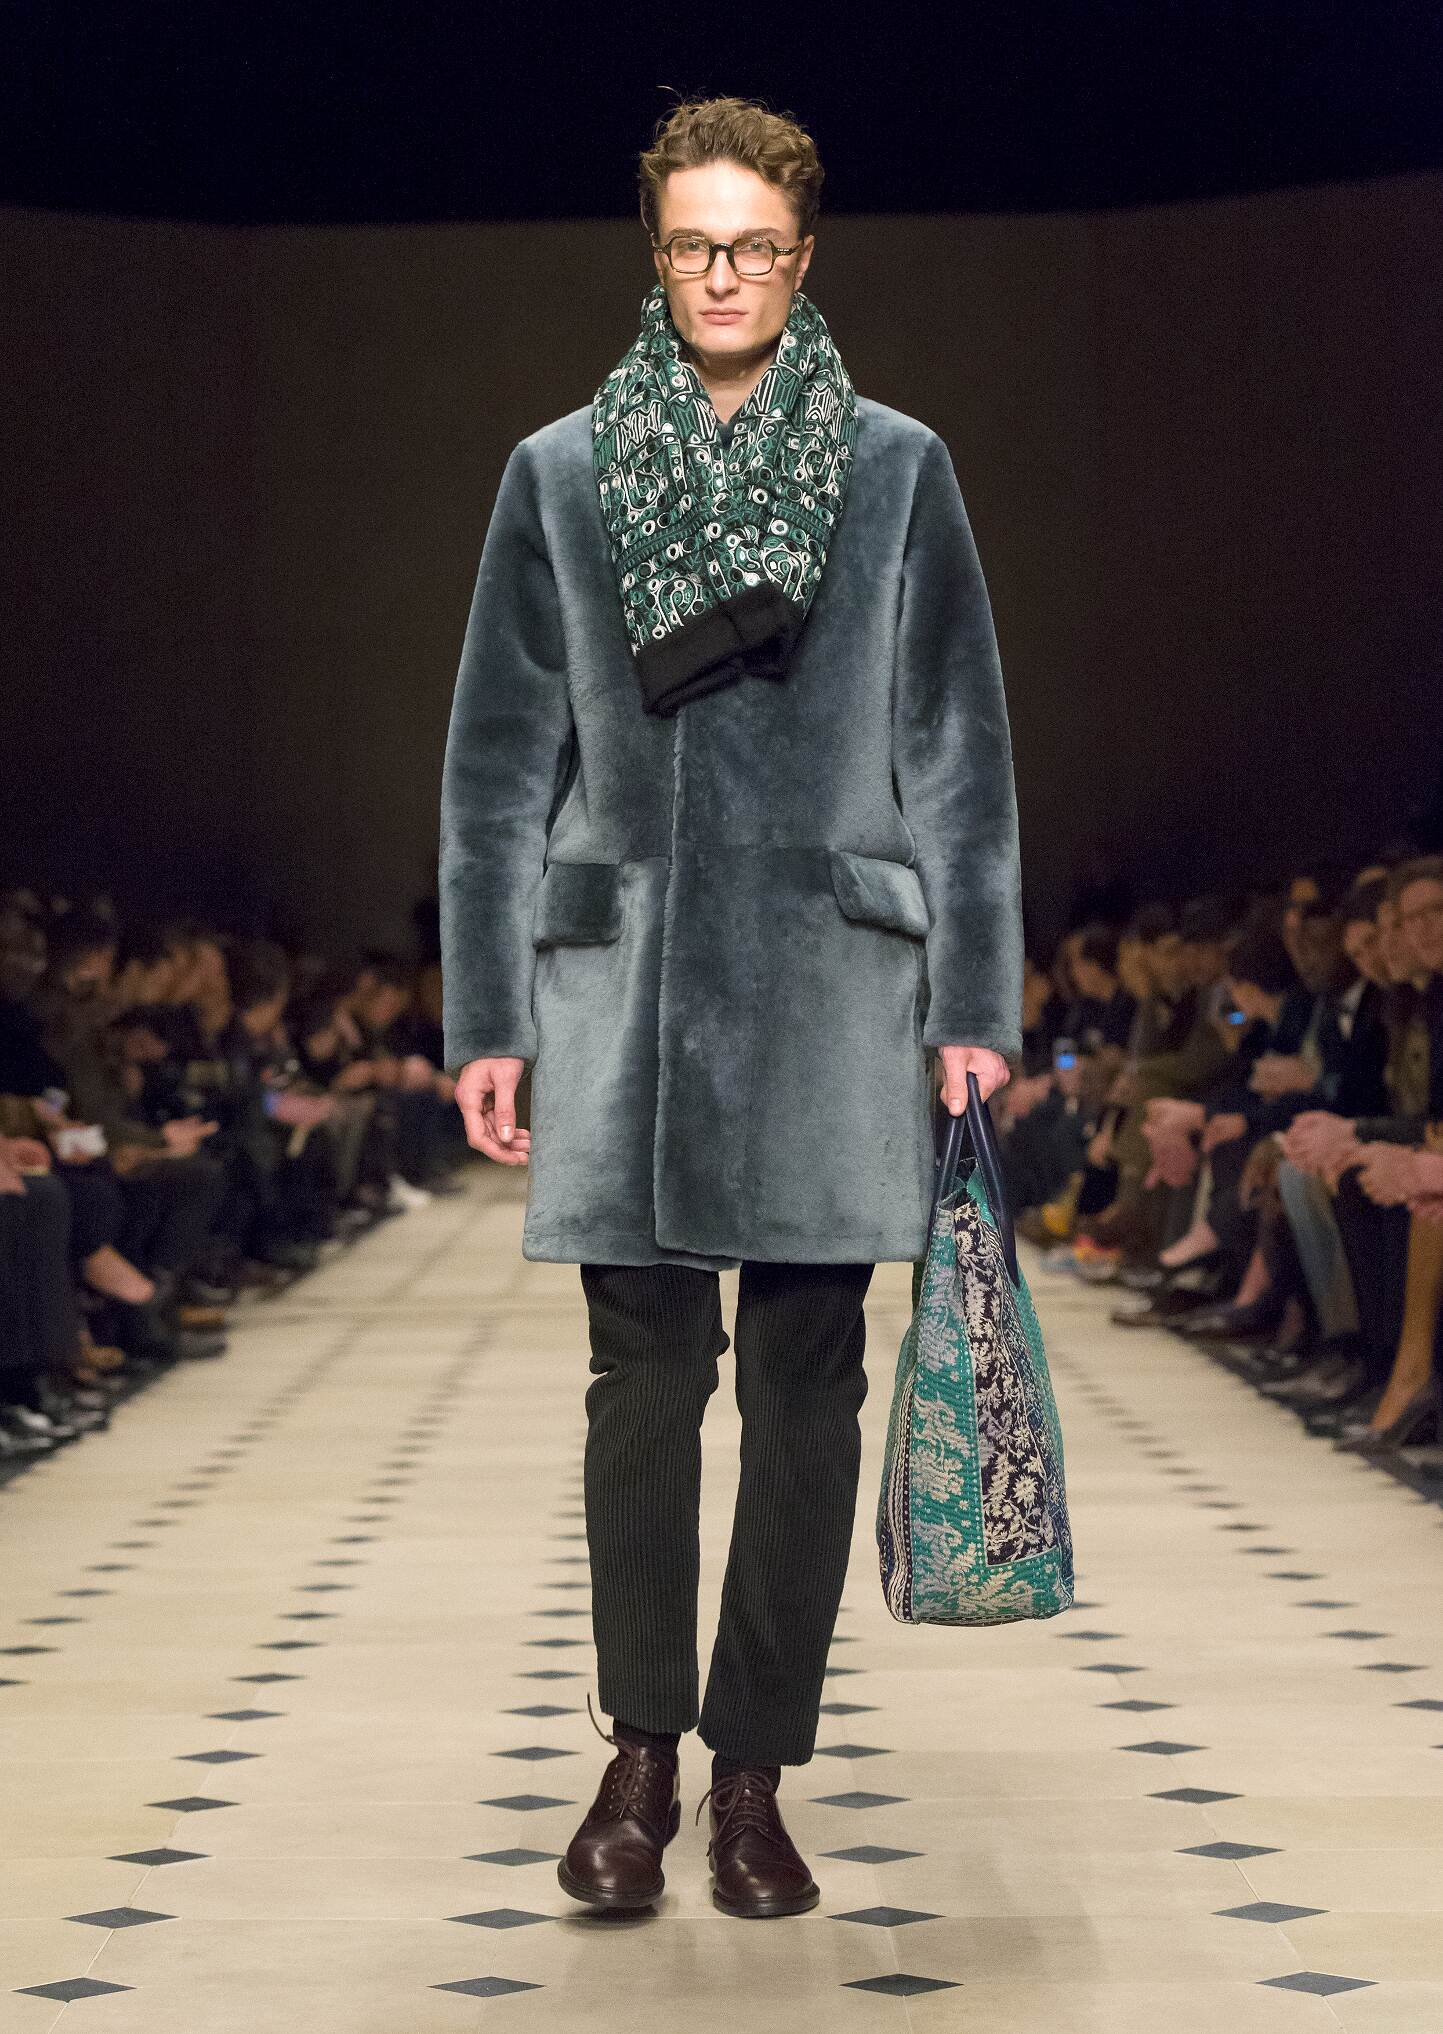 2015 Burberry Prorsum Fall Winter